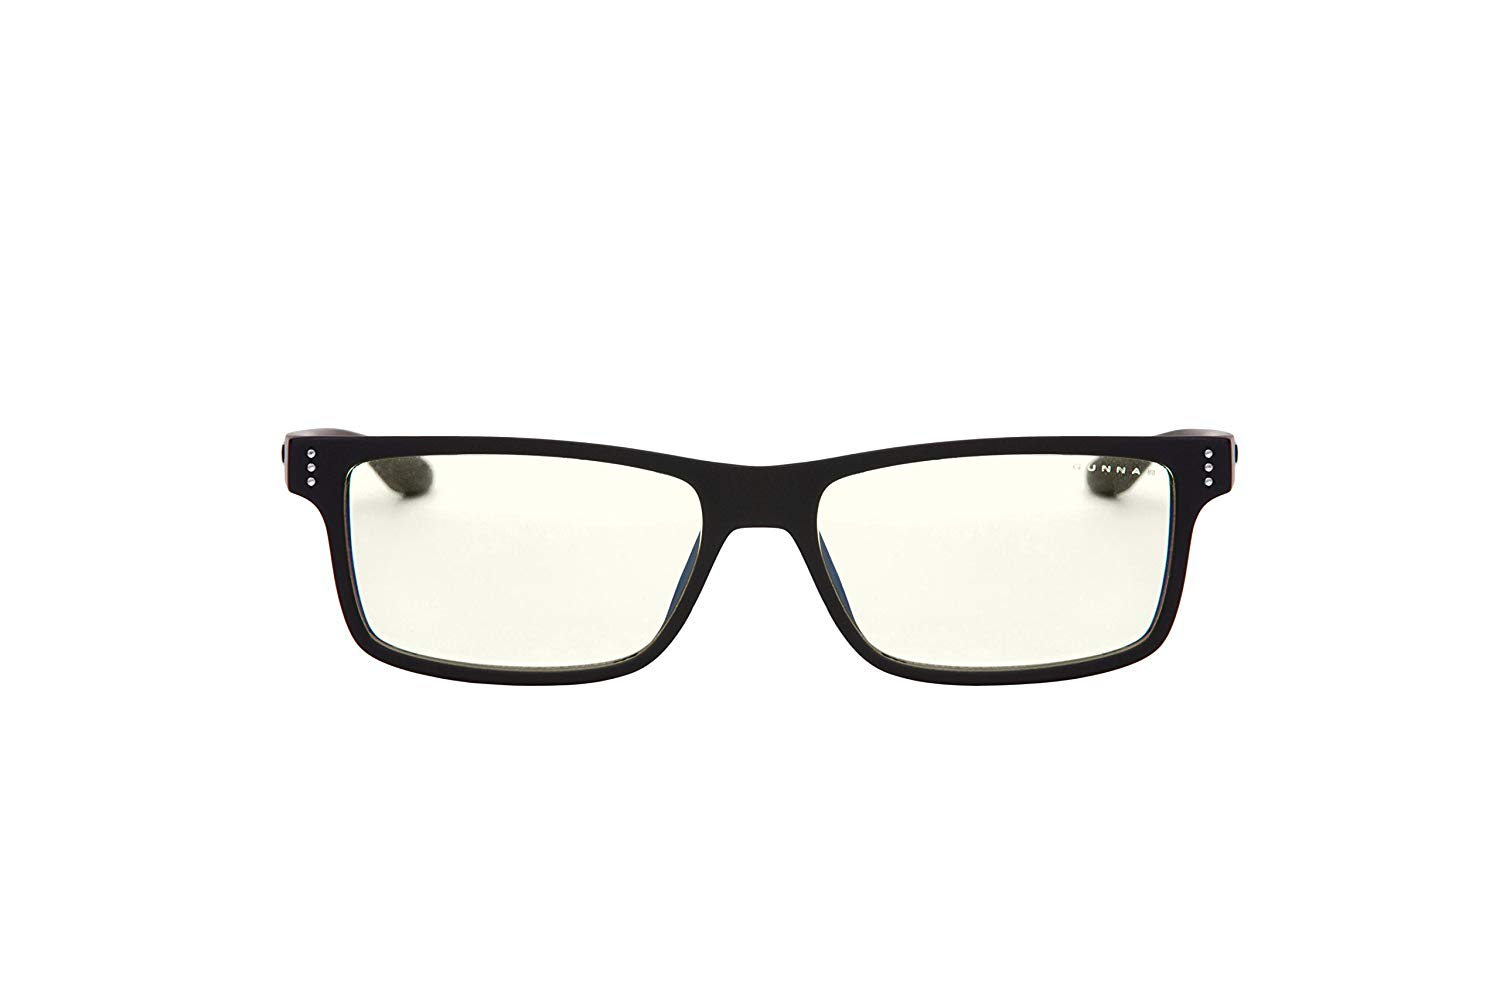 dd76c119323 New Gunnar Vertex Computer Liquet Lens Glasses Block Blue Light Onyx Eyewear